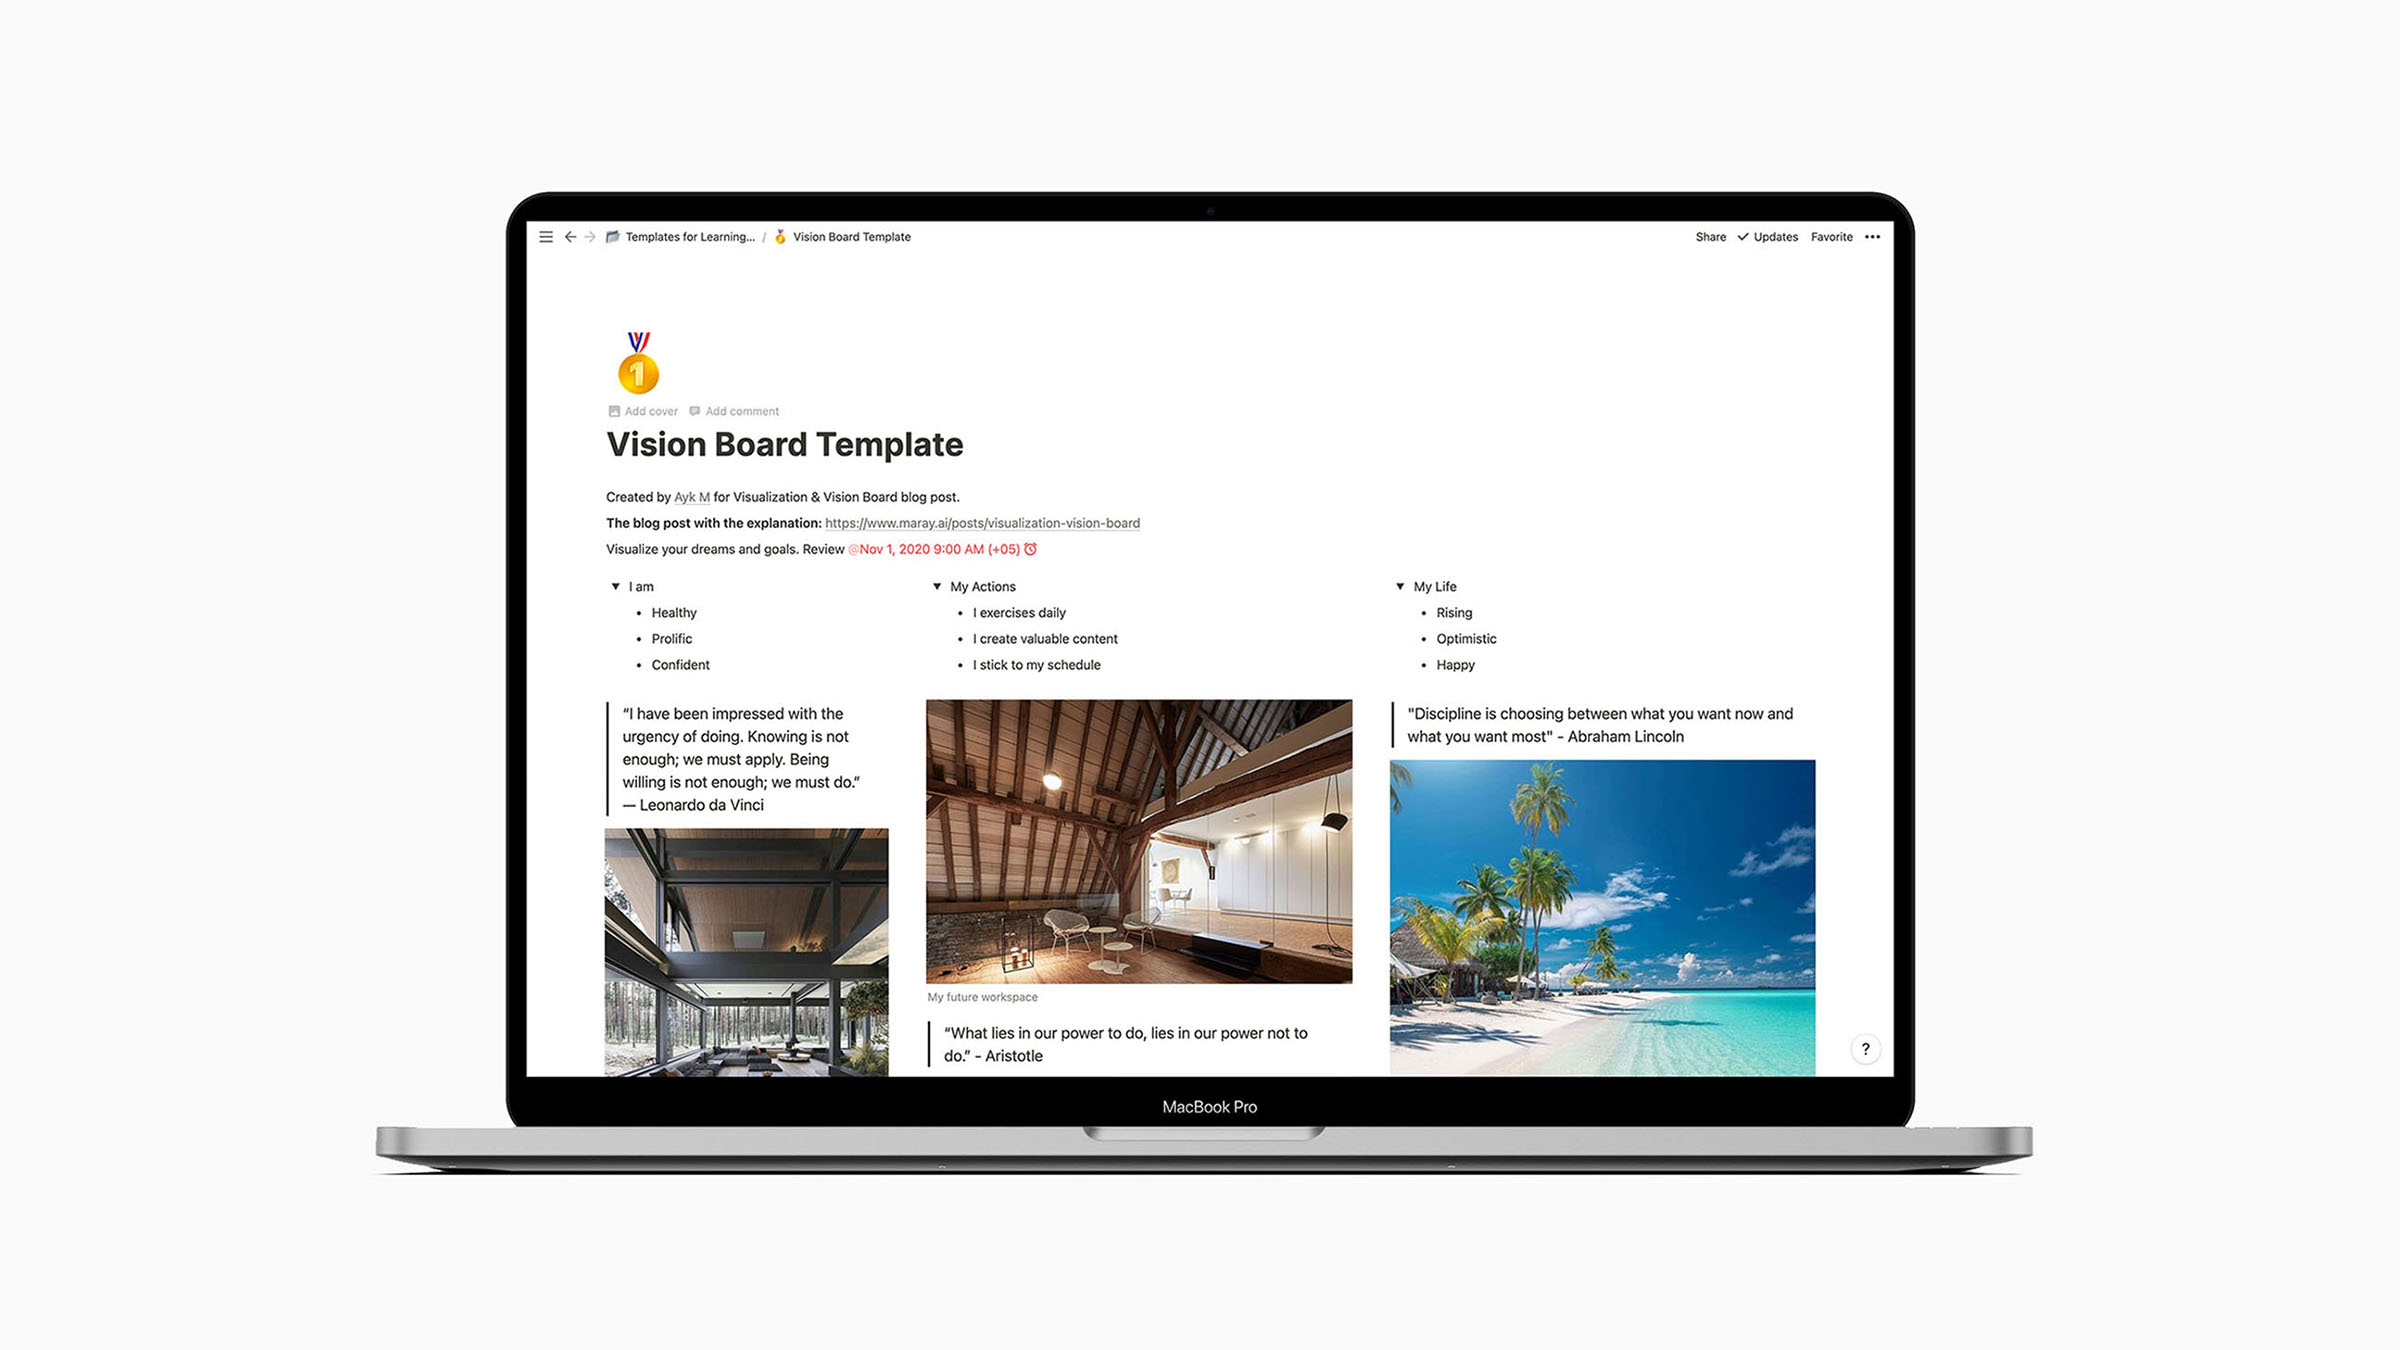 In this article, I will explain how to make a digital vision board and share a strategy to make it even more powerful using a goal-setting system in Notion.